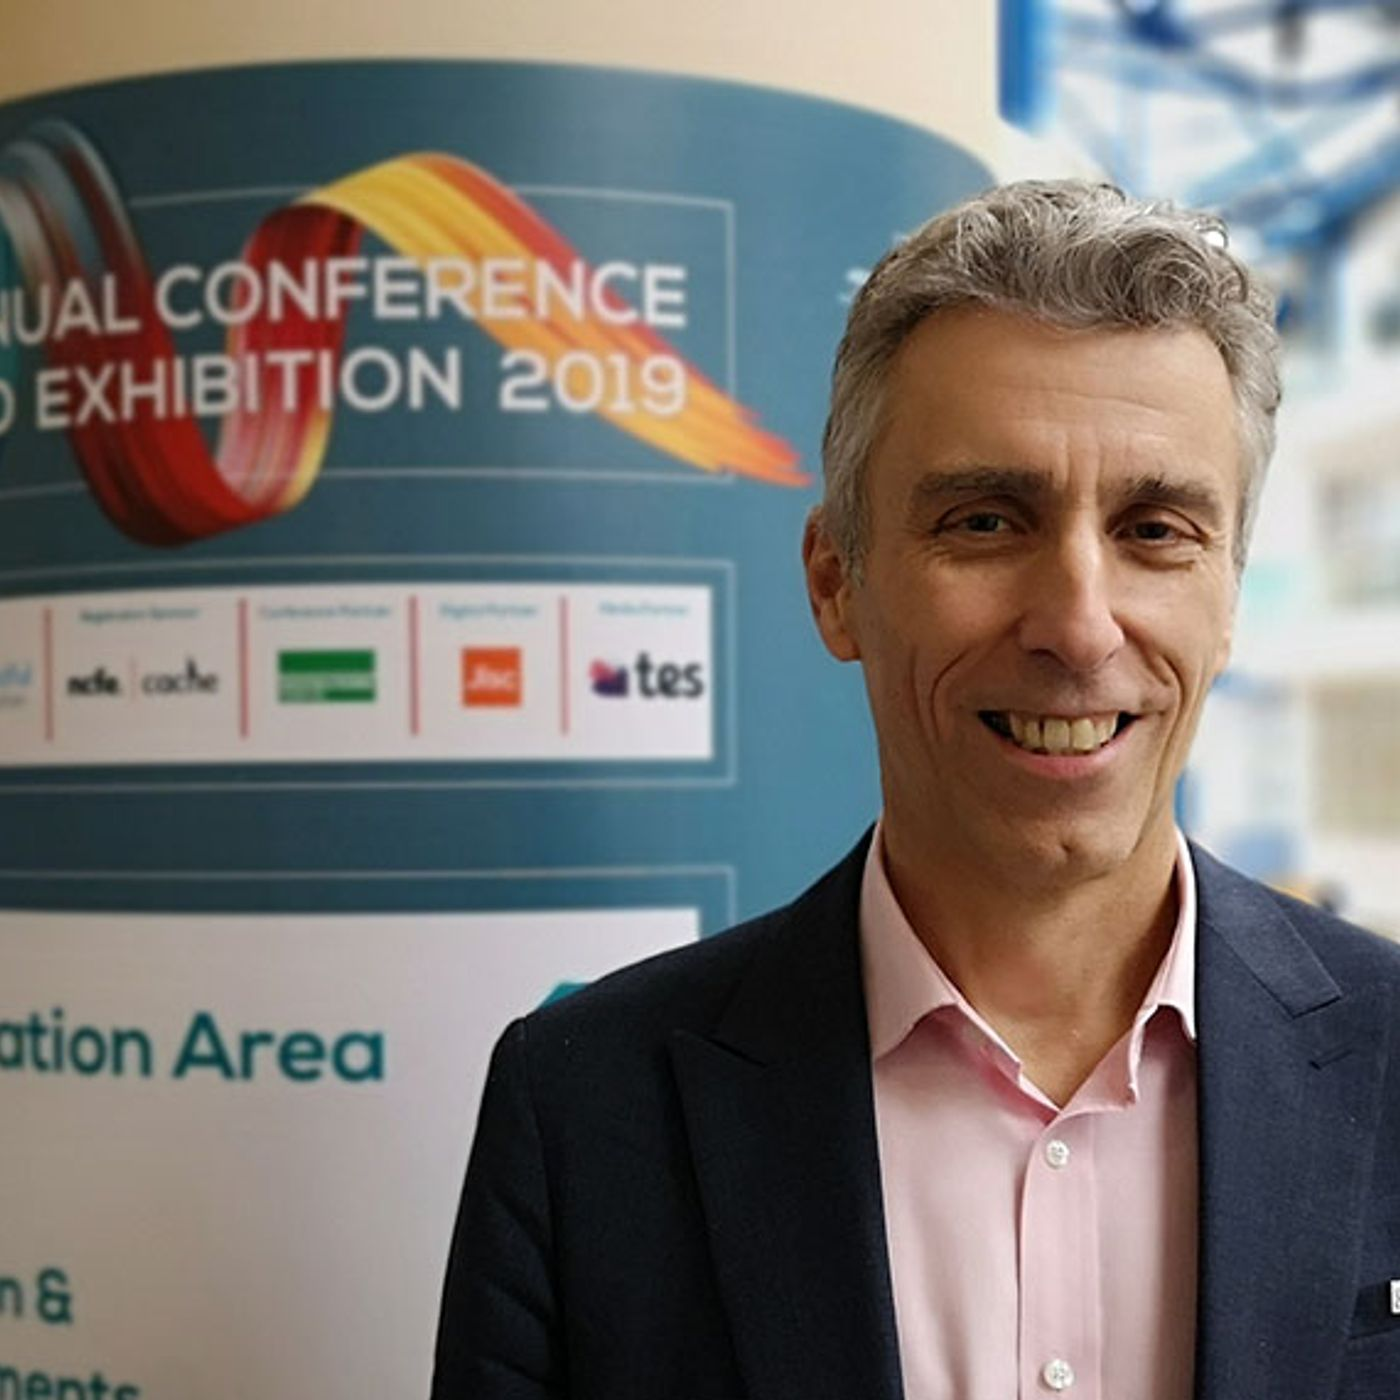 Podcast with AoC's David Hughes discussing T Level Industry Placements